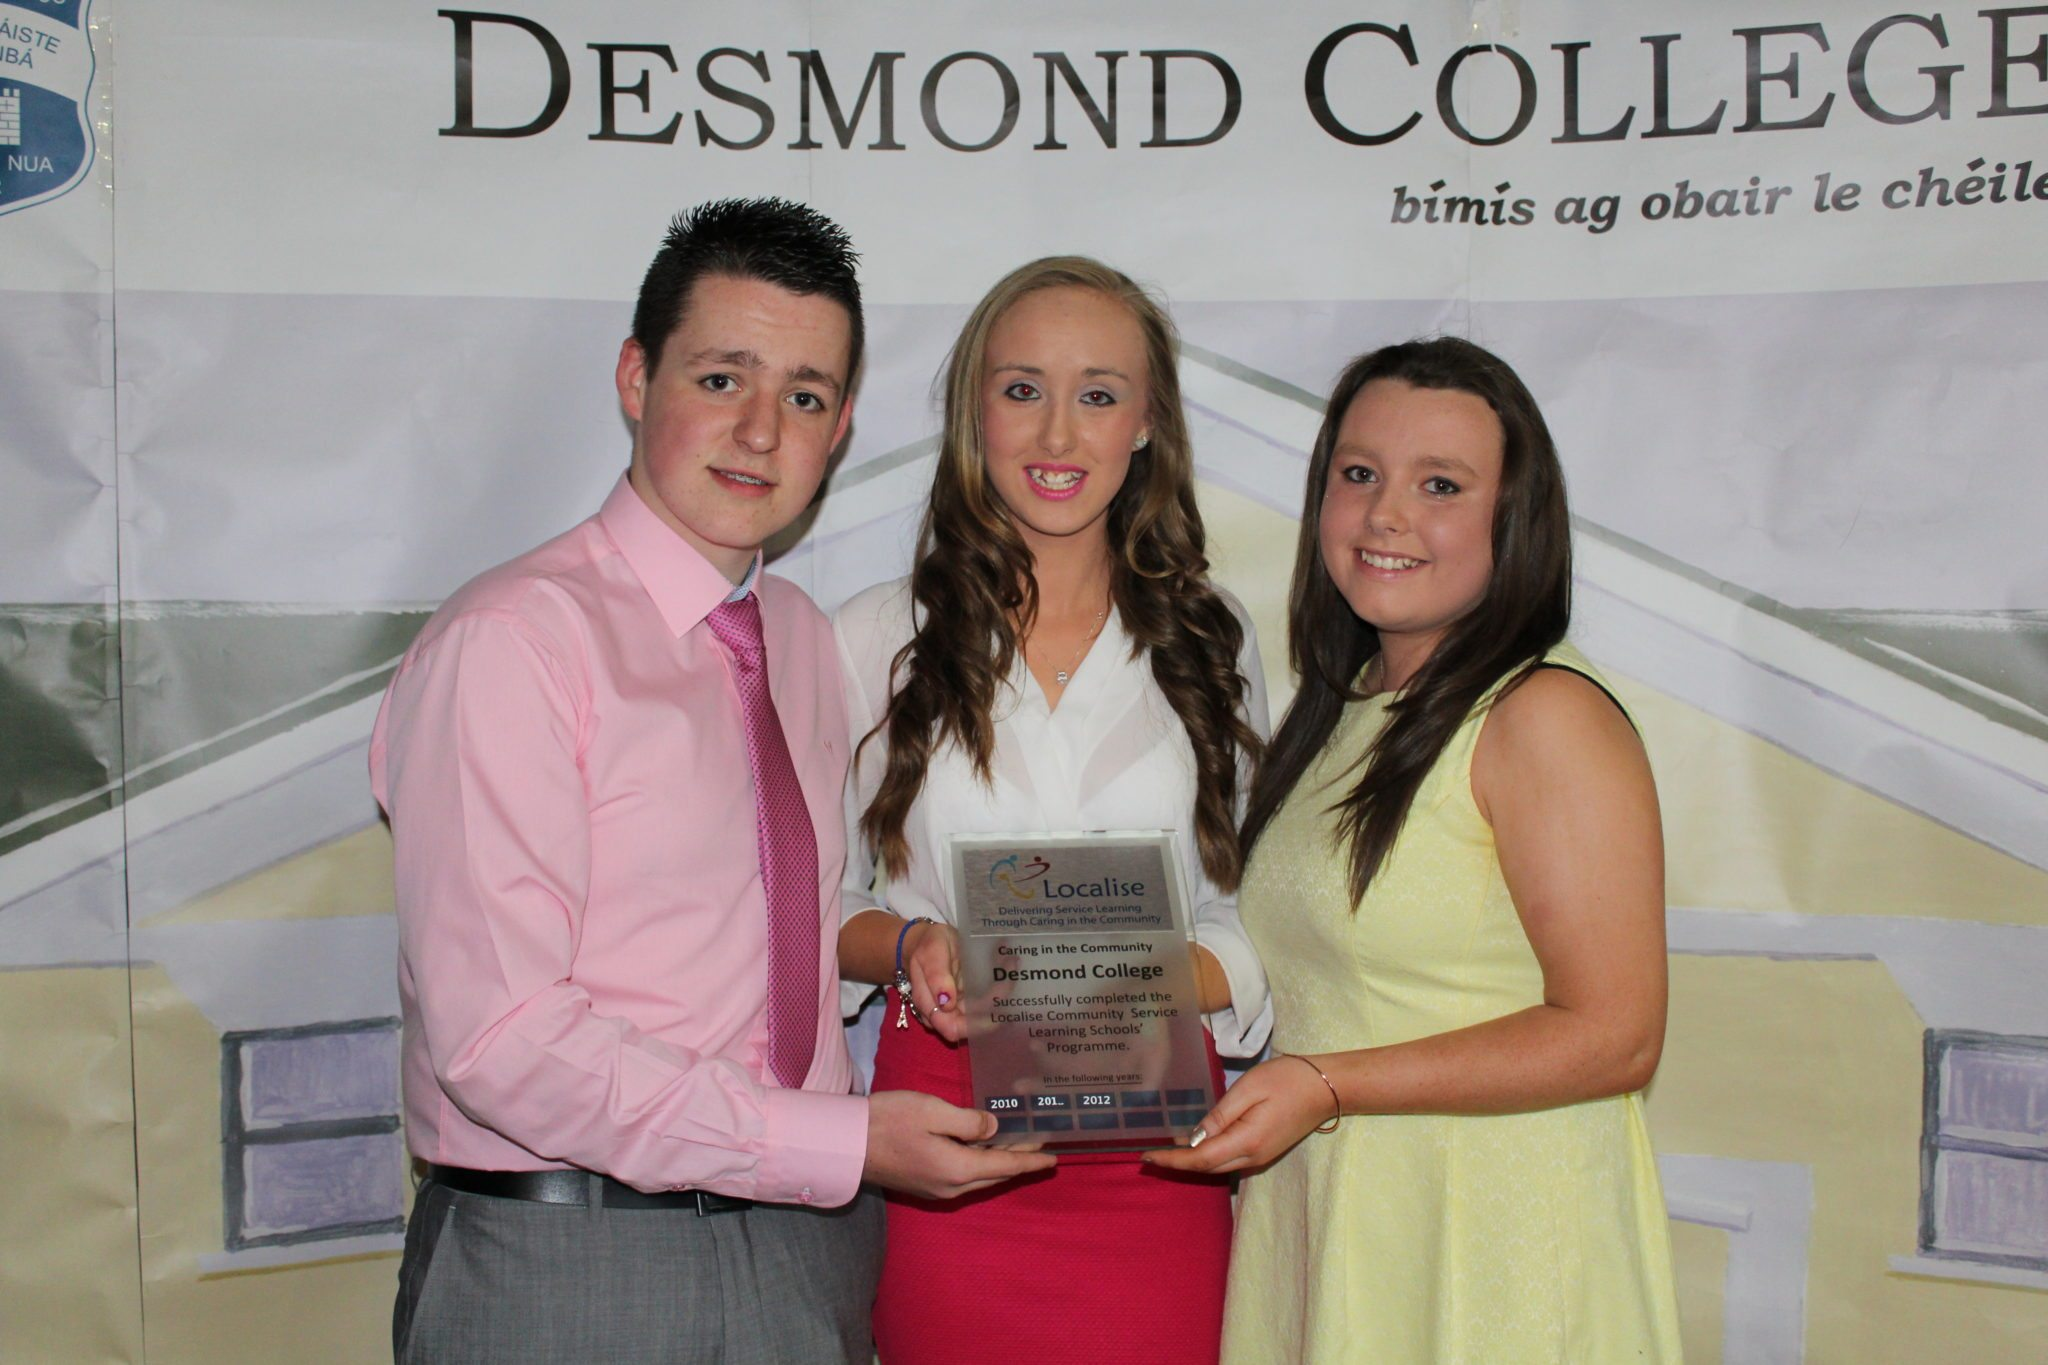 Desmond College TY Graduation 2015: Localize Project Award: Johnny Hunt, Shauna Hallinan and Patreeze Nugent